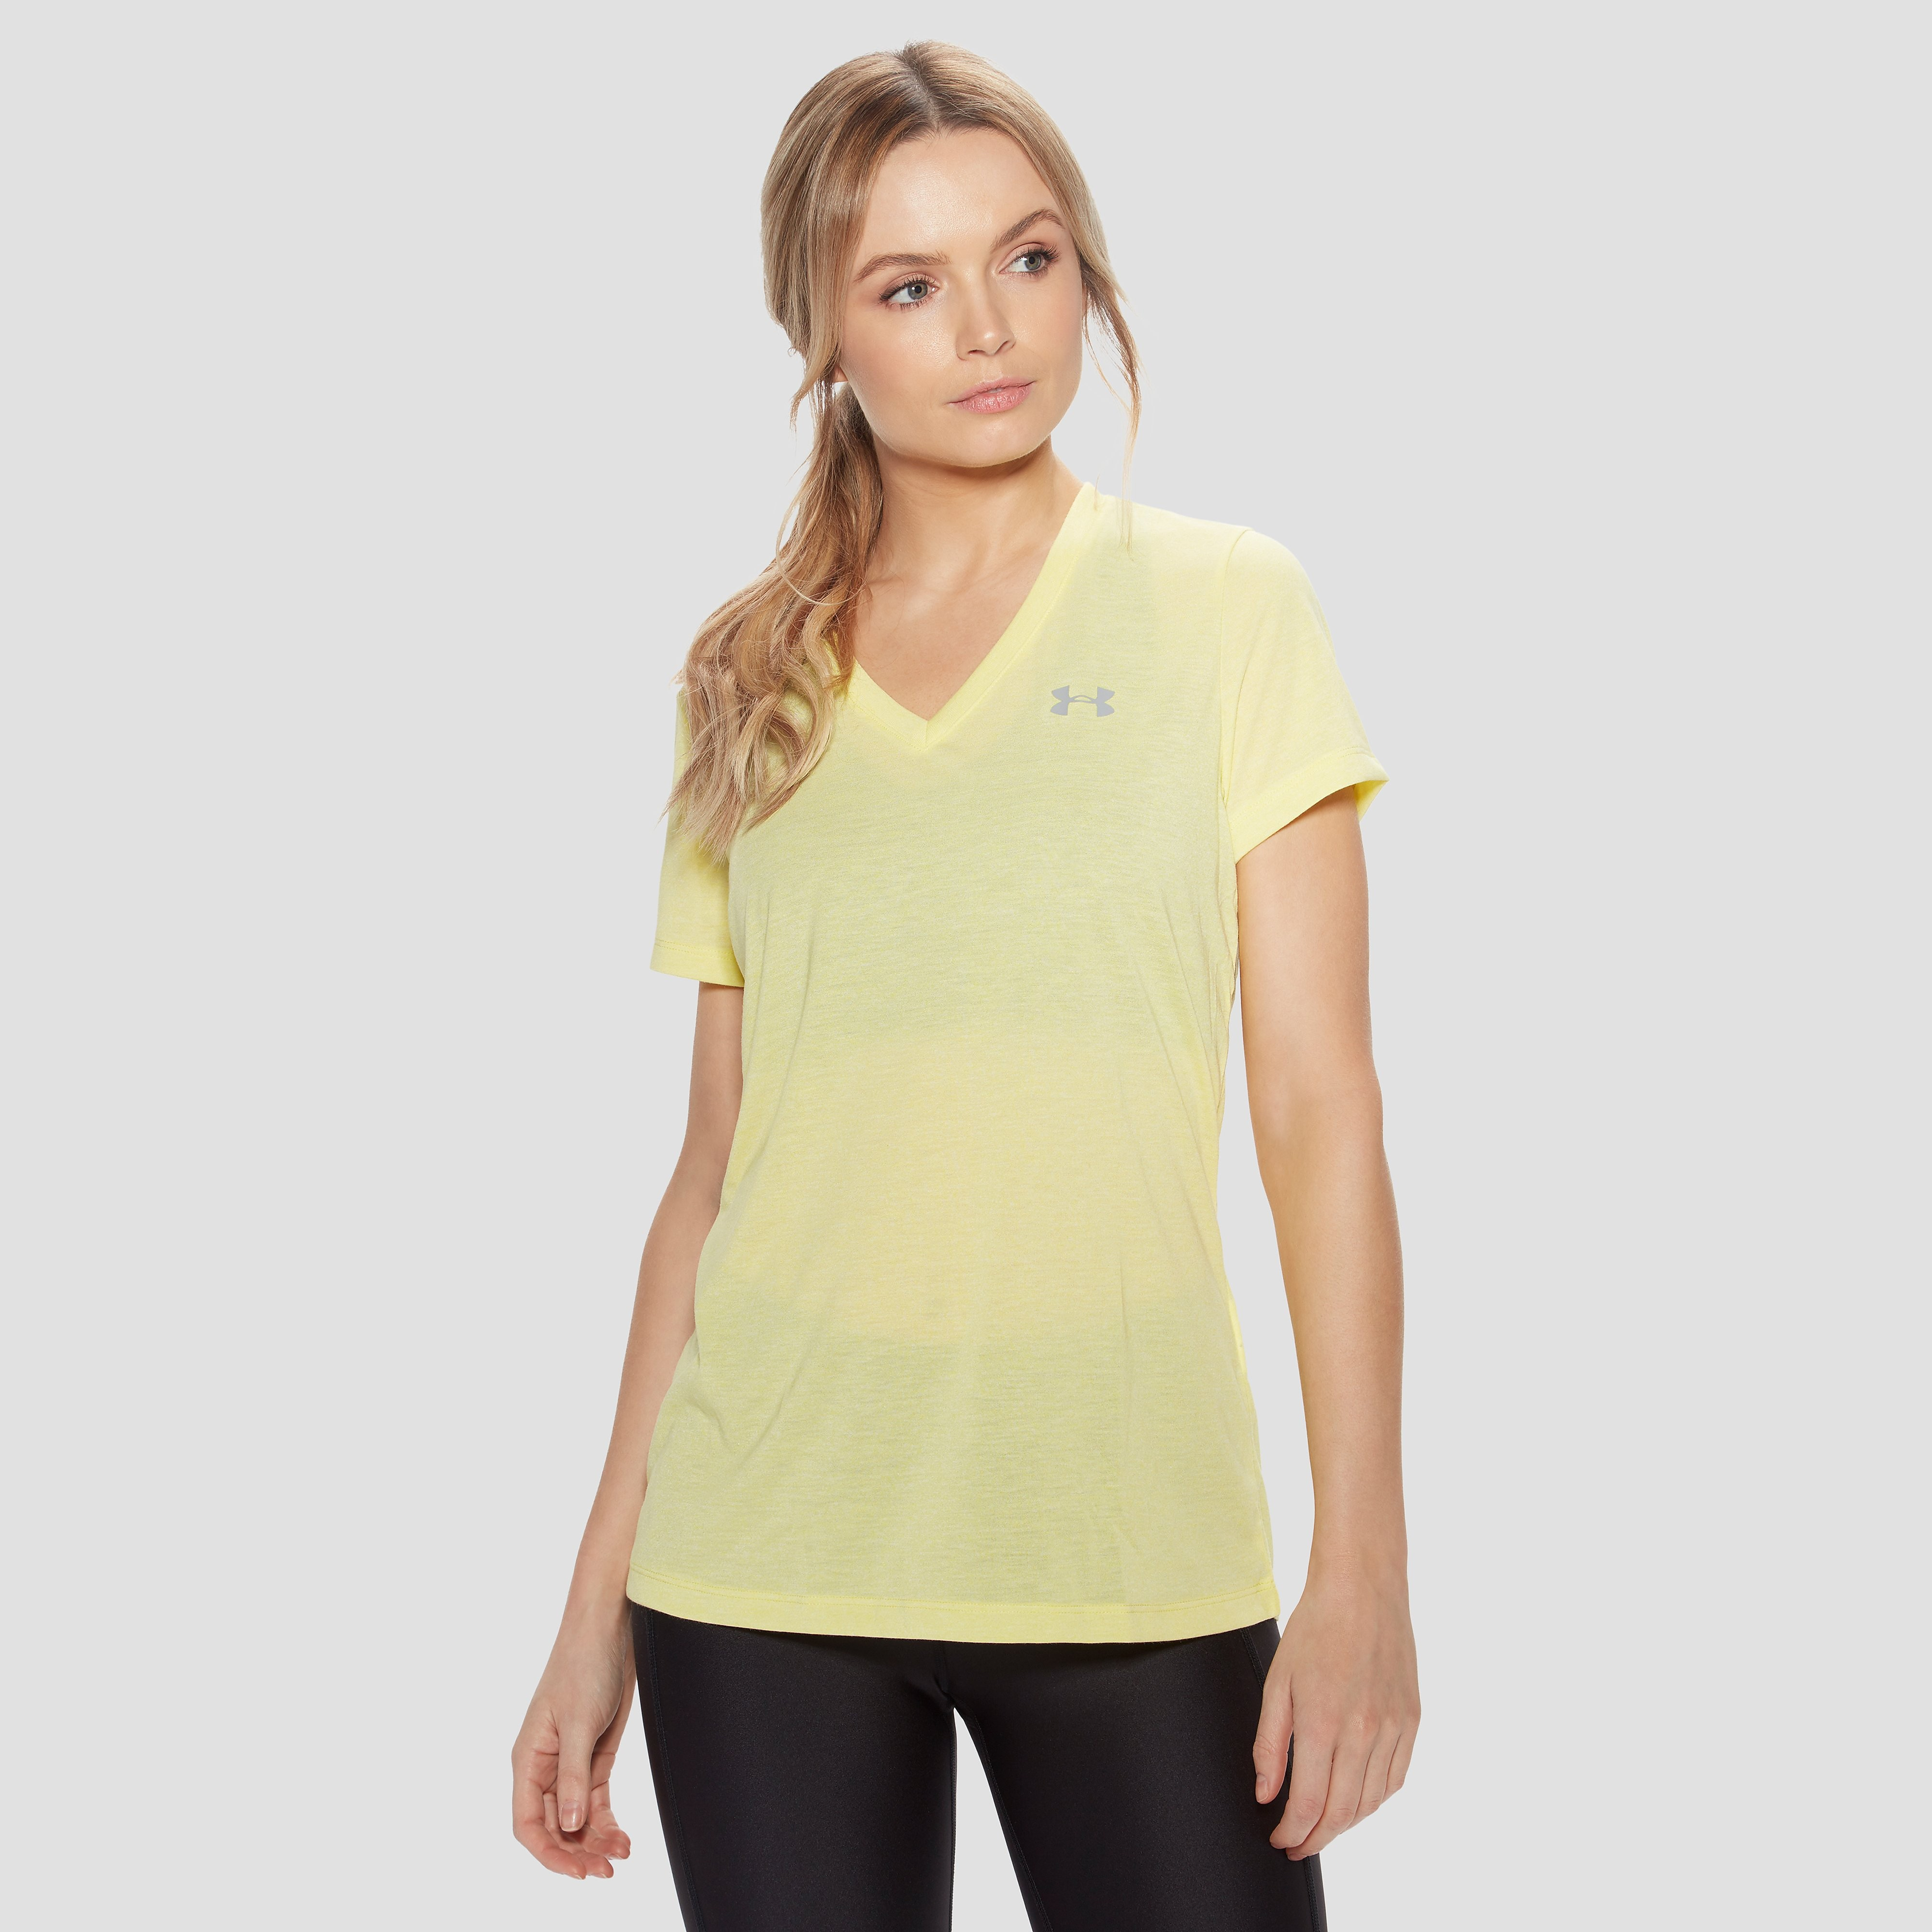 Under Armour Threadborne Short Sleeve V-Neck Women's Training Top